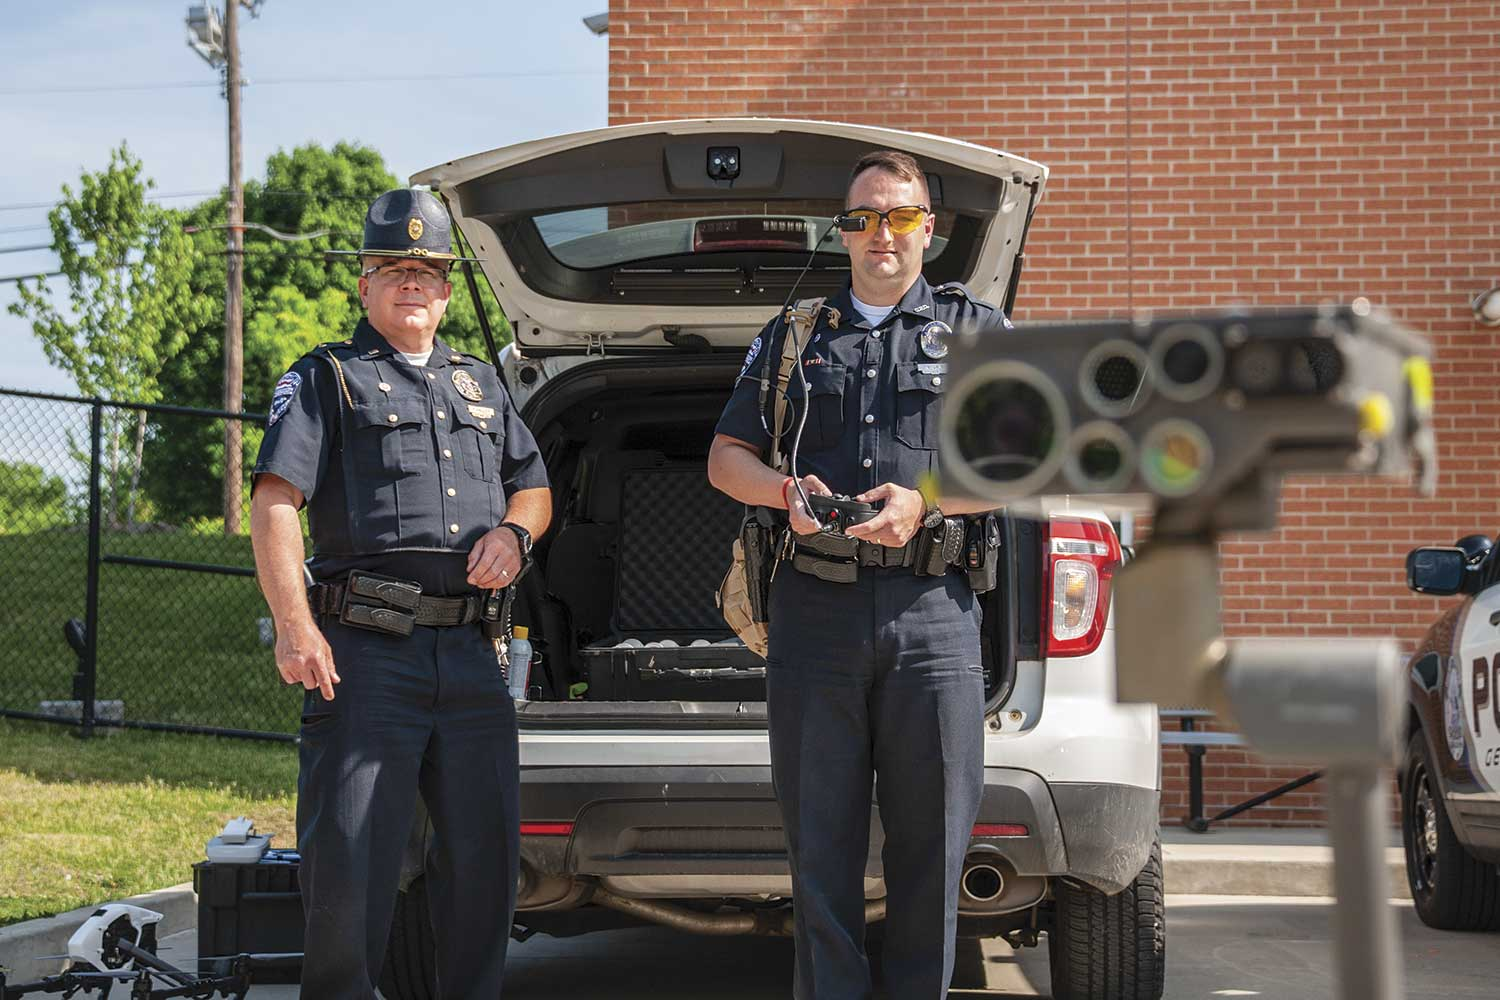 Georgetown Police Lt. Phil Halley, left, and Officer Mitch Lair demonstrate the department's robot, Johnny 5. The robot was obtained through military surplus at no cost to the agency. (Photo by Jim Robertson)